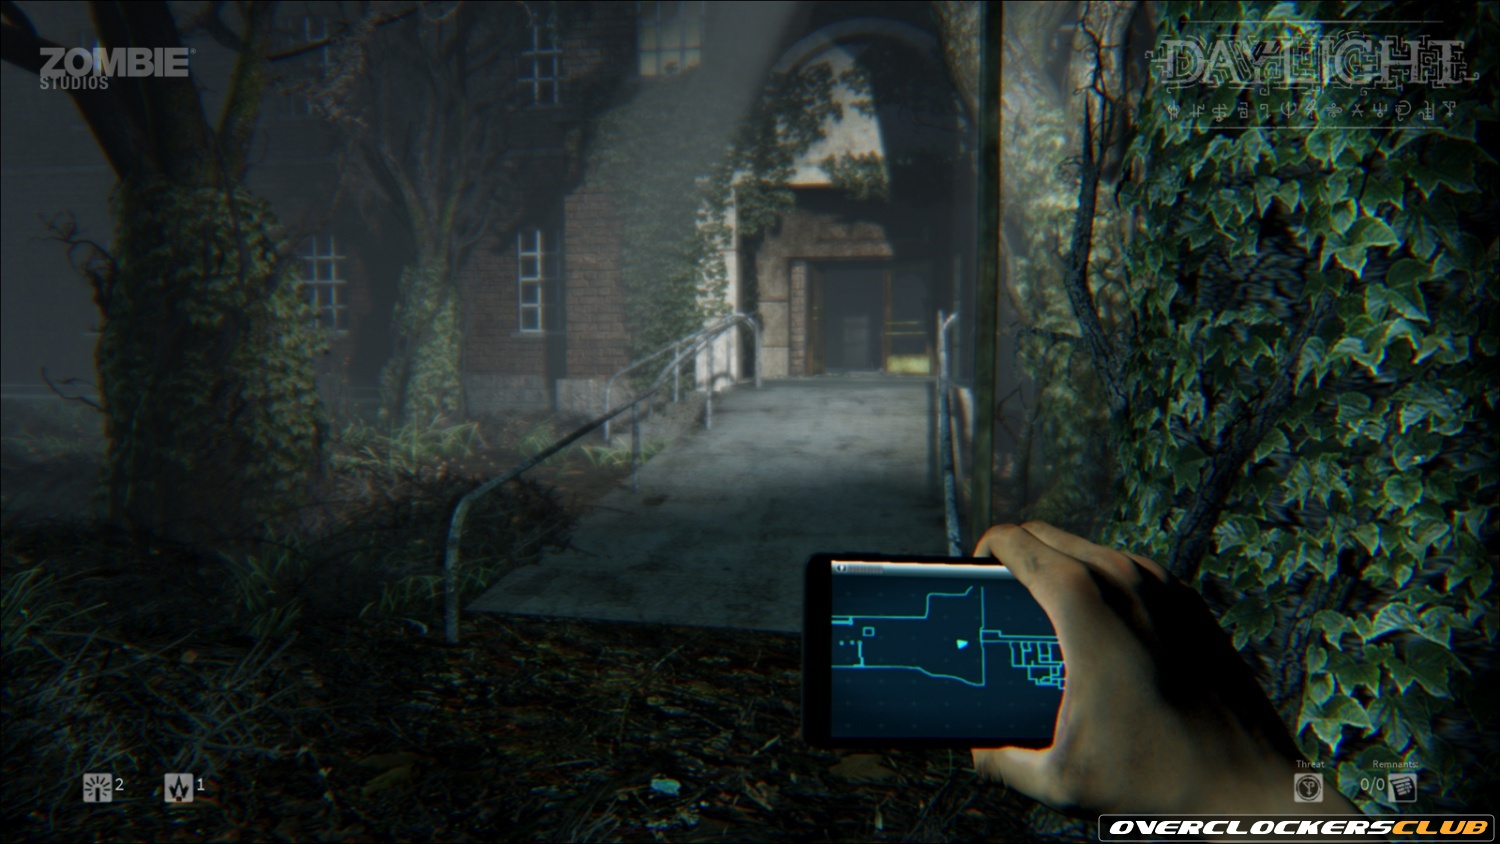 Zombie Studios' Daylight Haunting PCs and PS4s on April 8